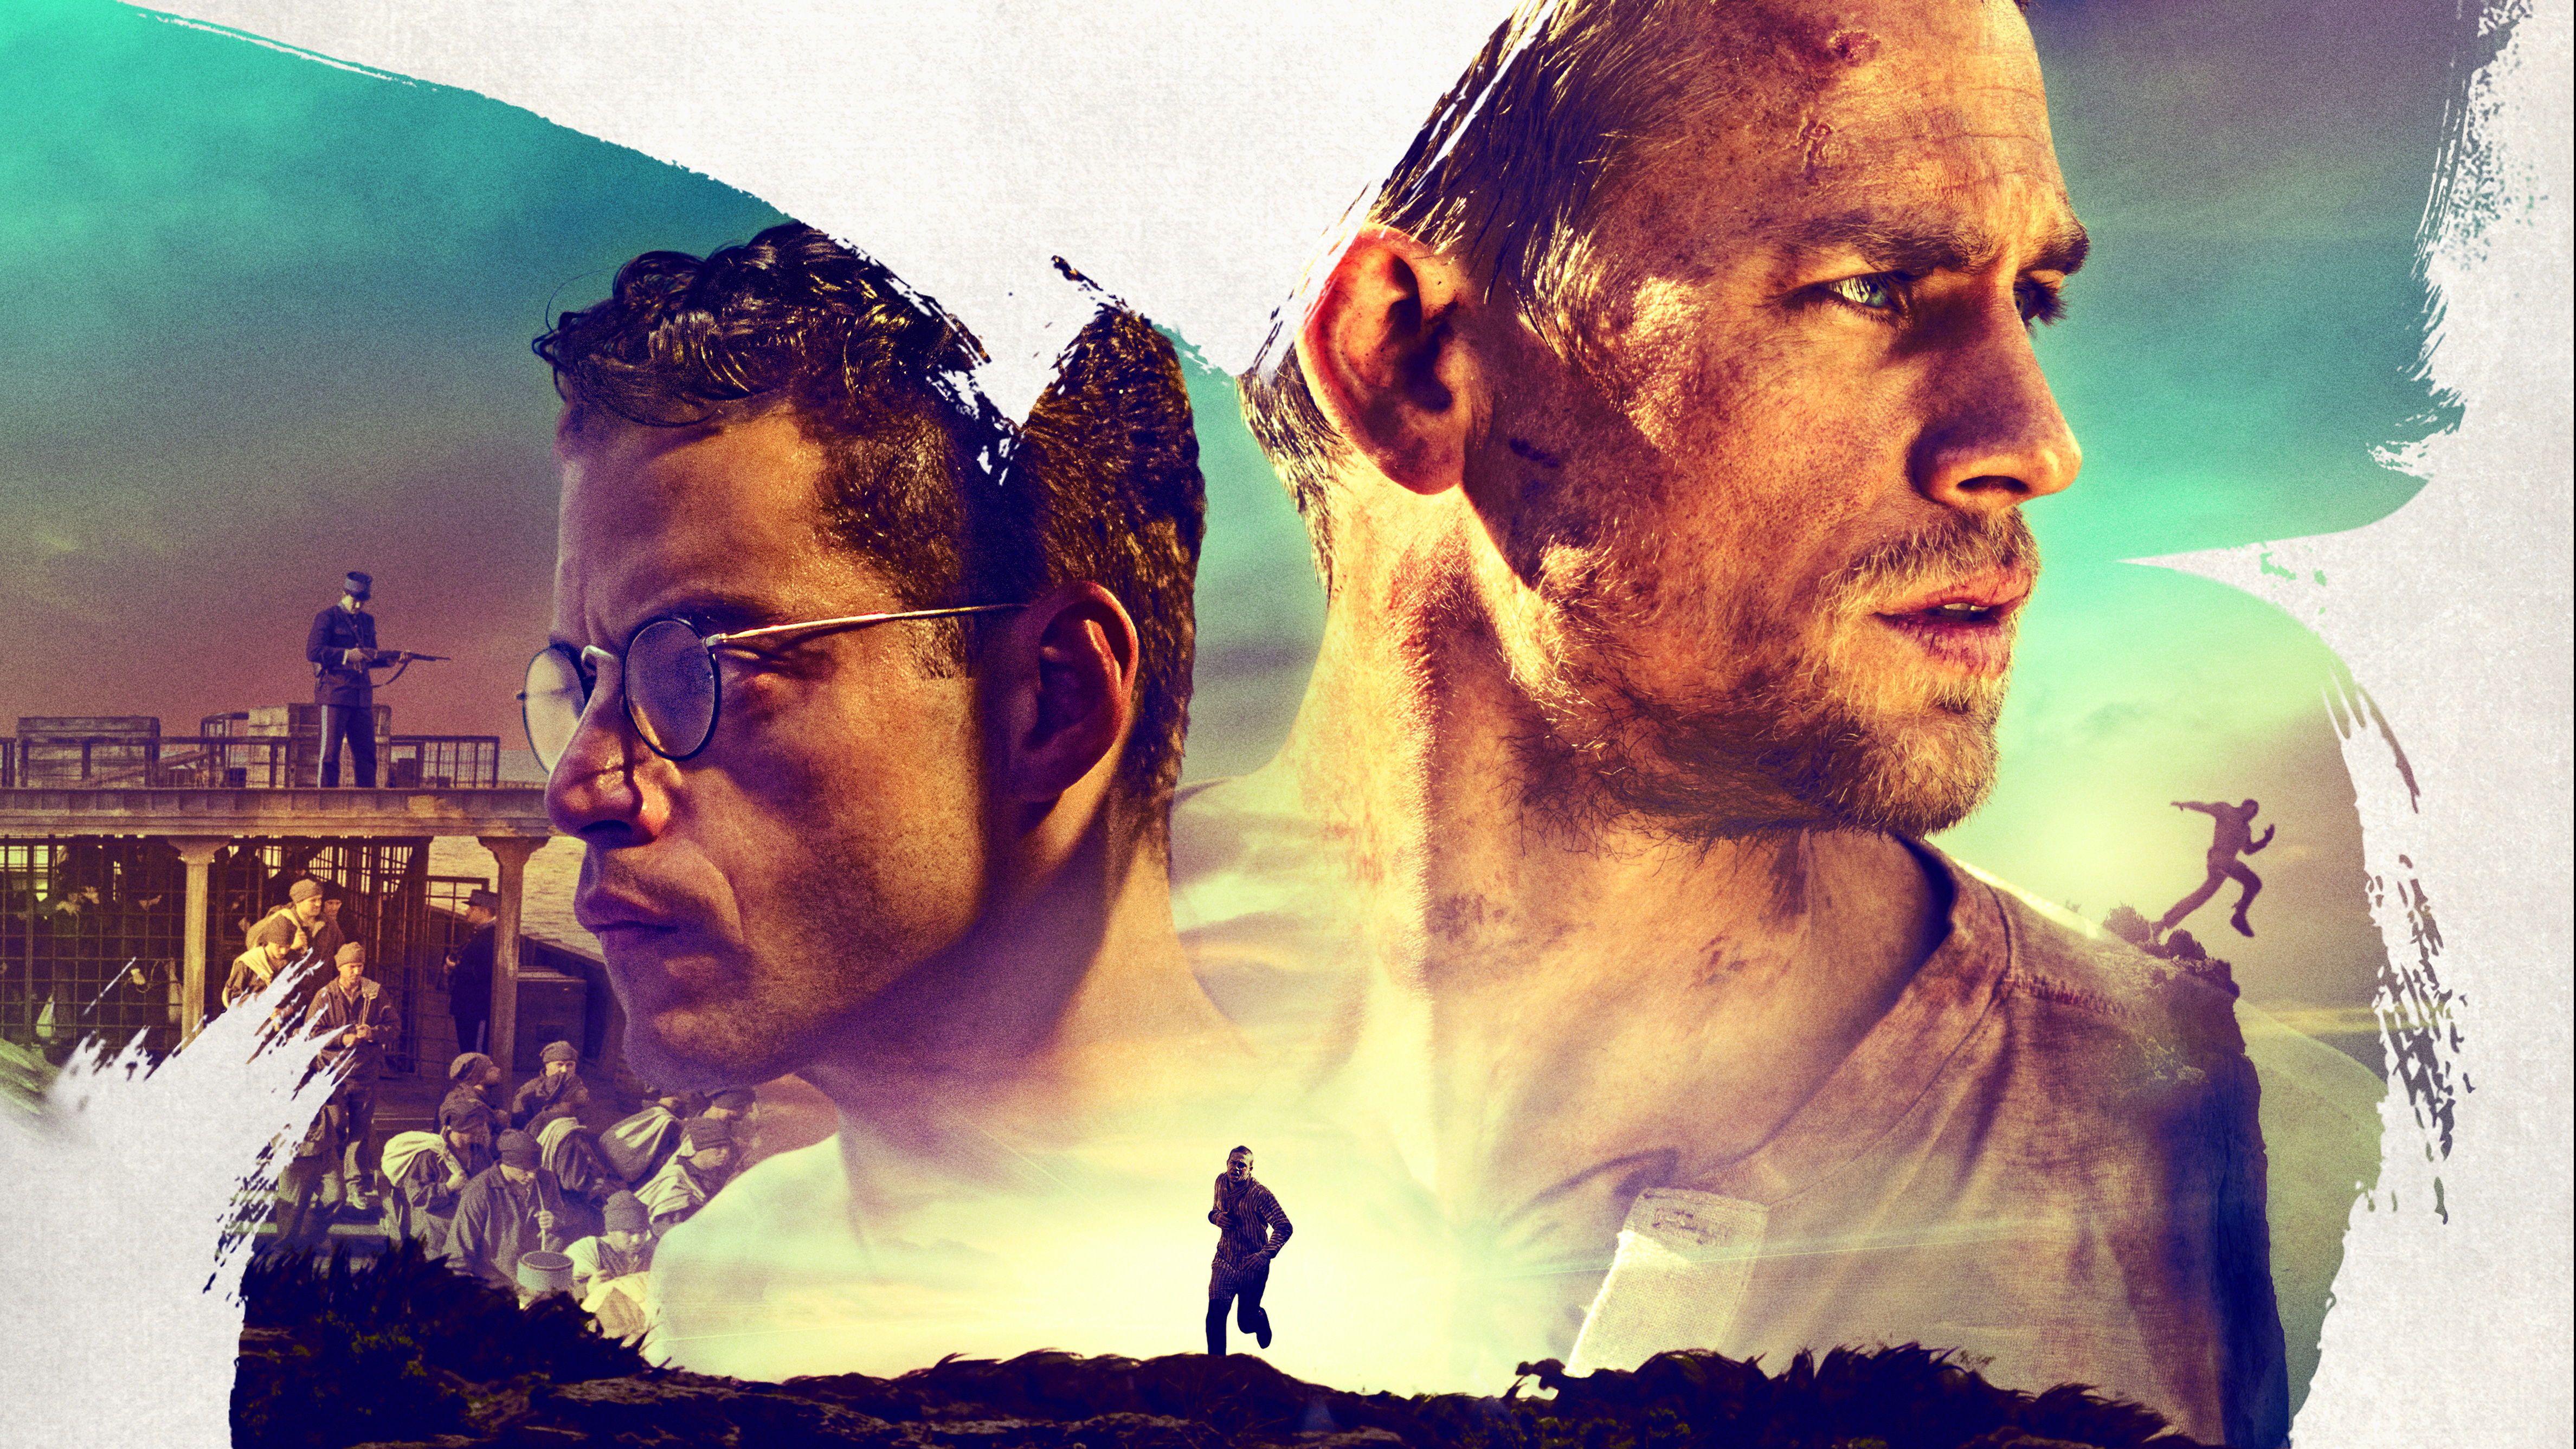 Papillon 2018 Movie Hd Movies 4k Wallpapers Images